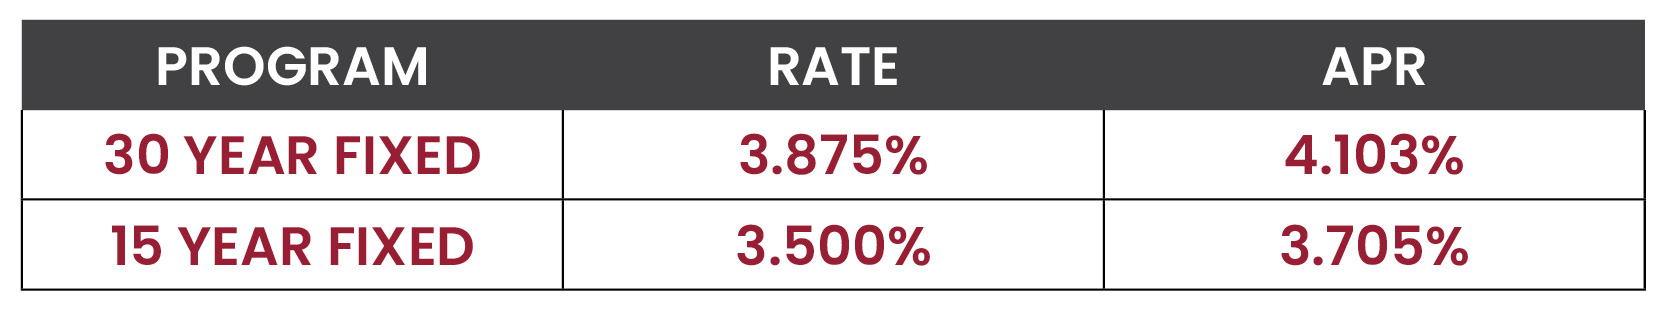 Mortgage Rate Watch Lower Rates Lowest Rates Market Update August 2019 Rates